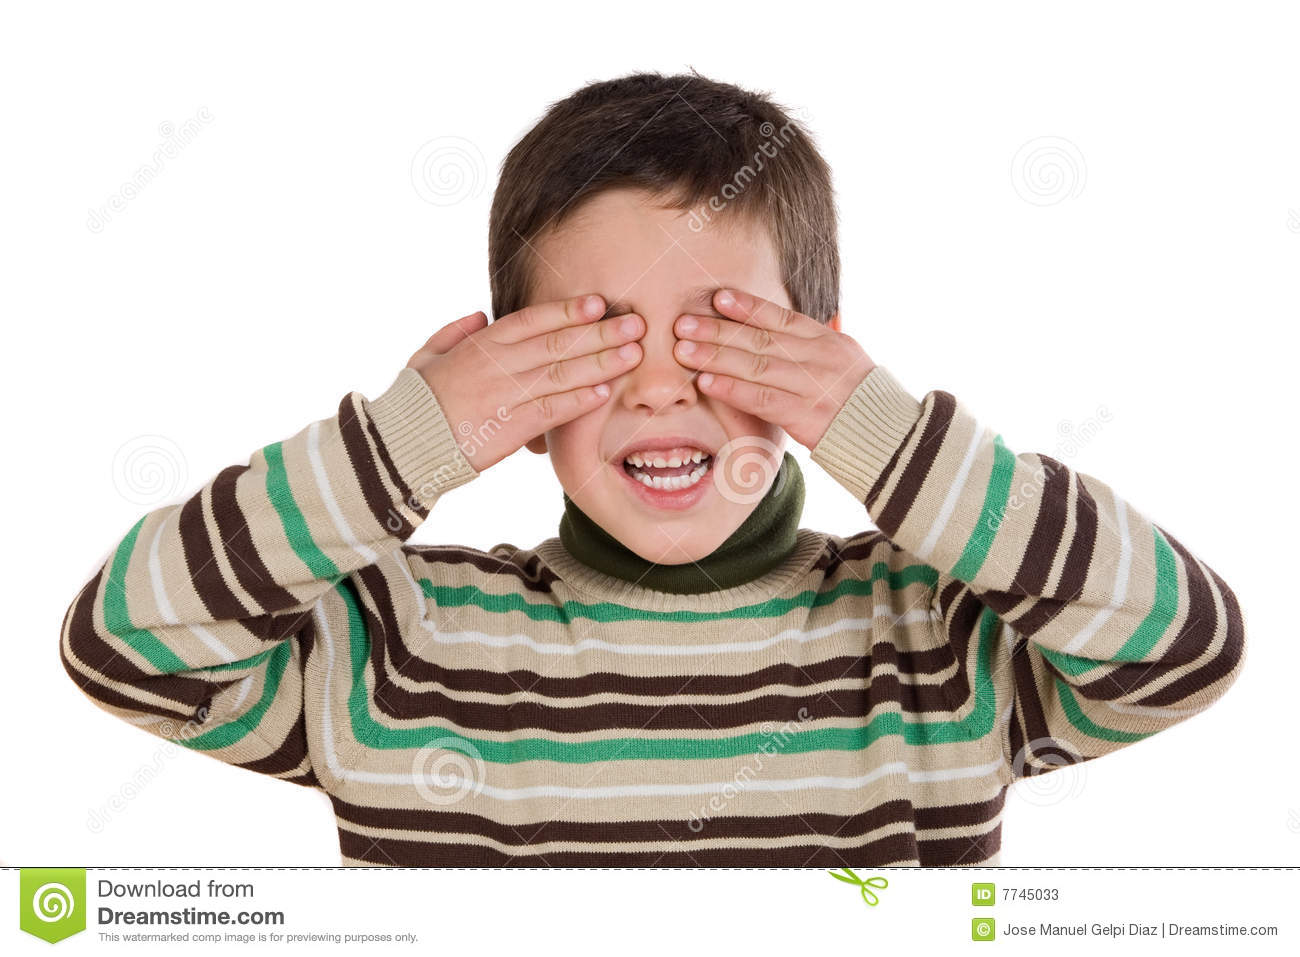 Cover eyes clipart vector library download Child Covering Eyes Stock Photo - Image: 30690540 vector library download